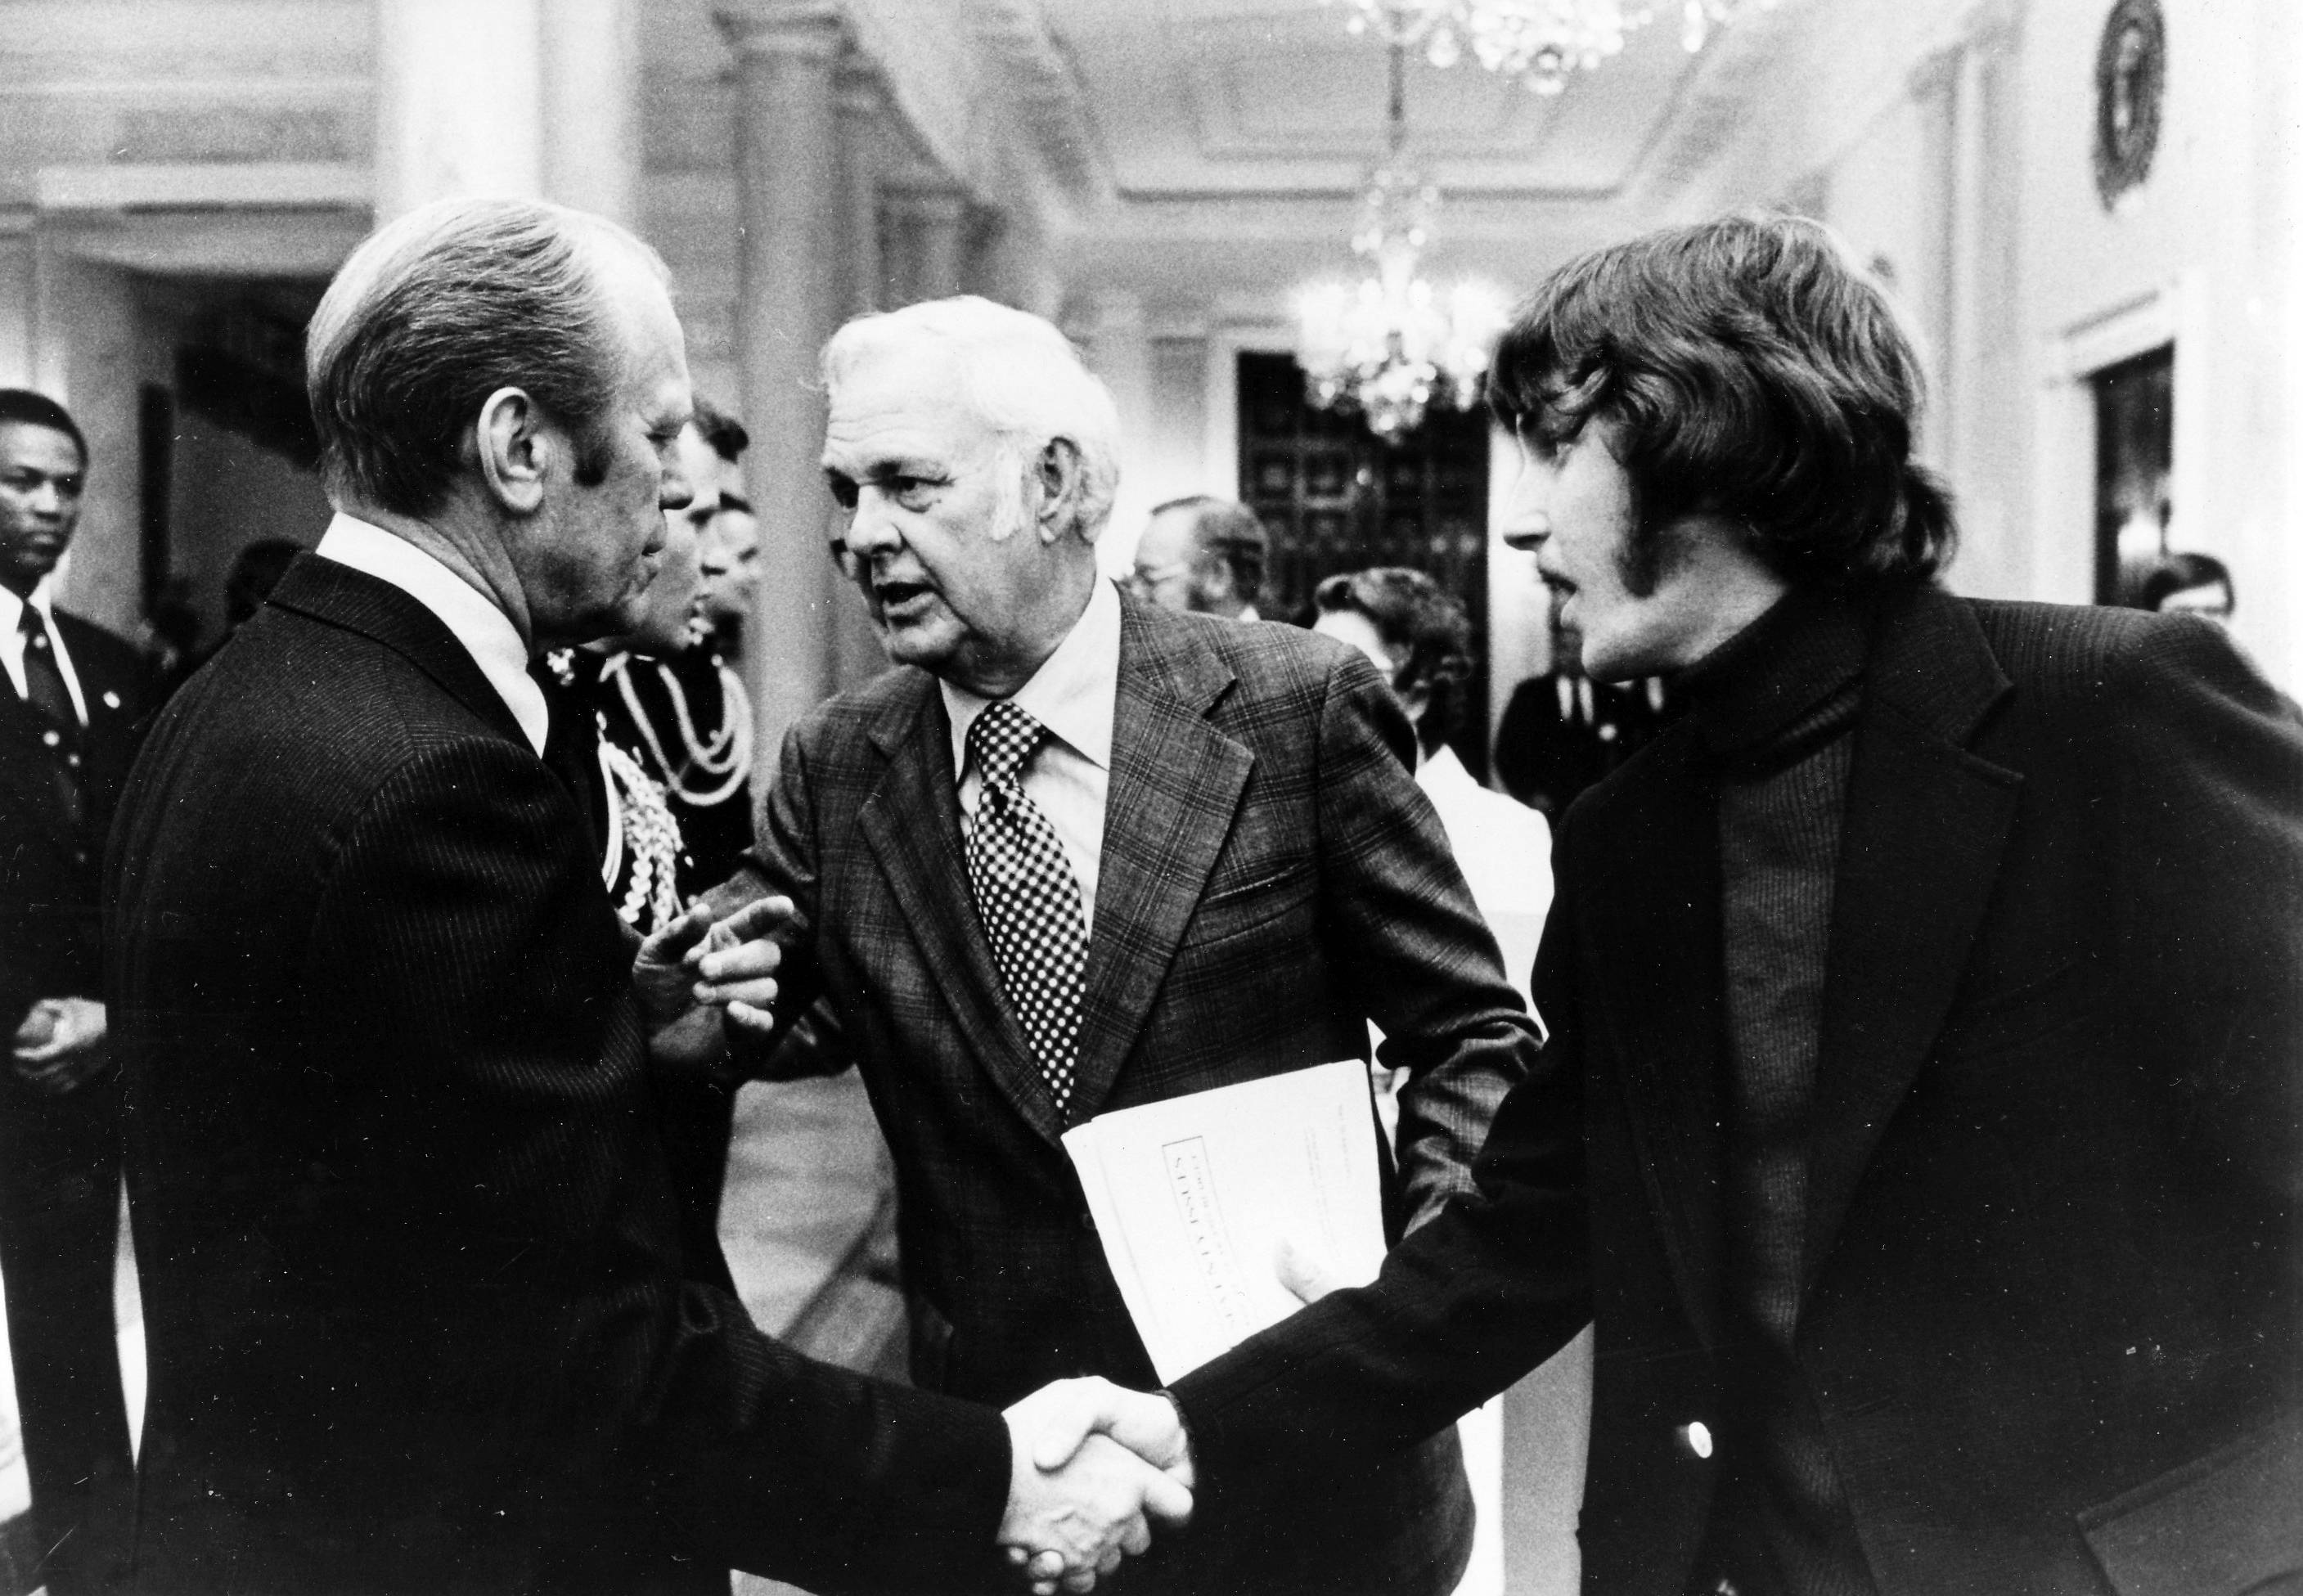 During a press gathering at the White House in 1975, President Gerald R. Ford greets Daily Herald owner and publisher Stuart R. Paddock Jr., center, and his teenage son, Stuart III.